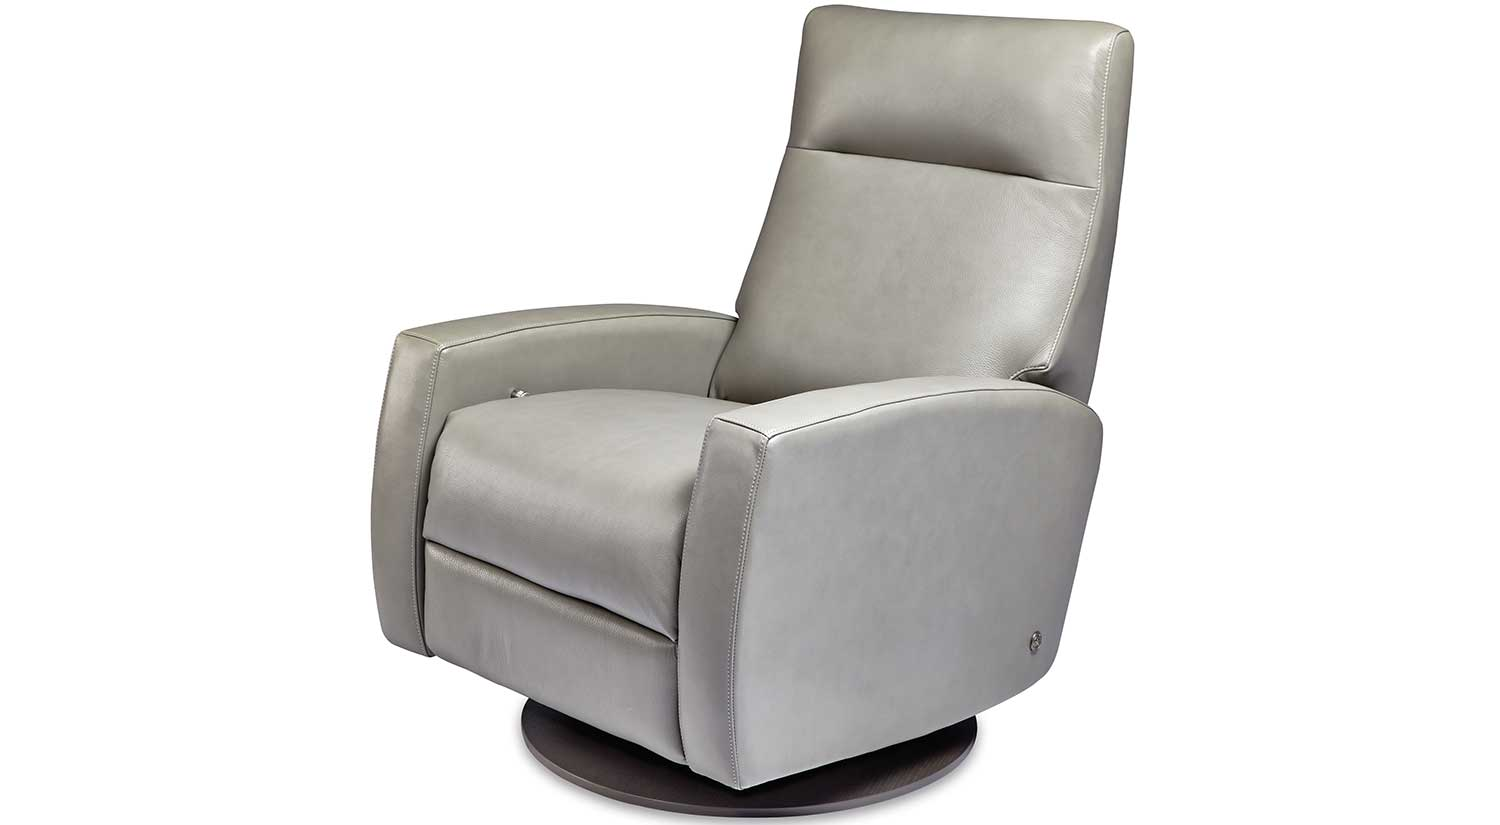 american leather chairs and recliners chair arm covers circle furniture eva comfort recliner